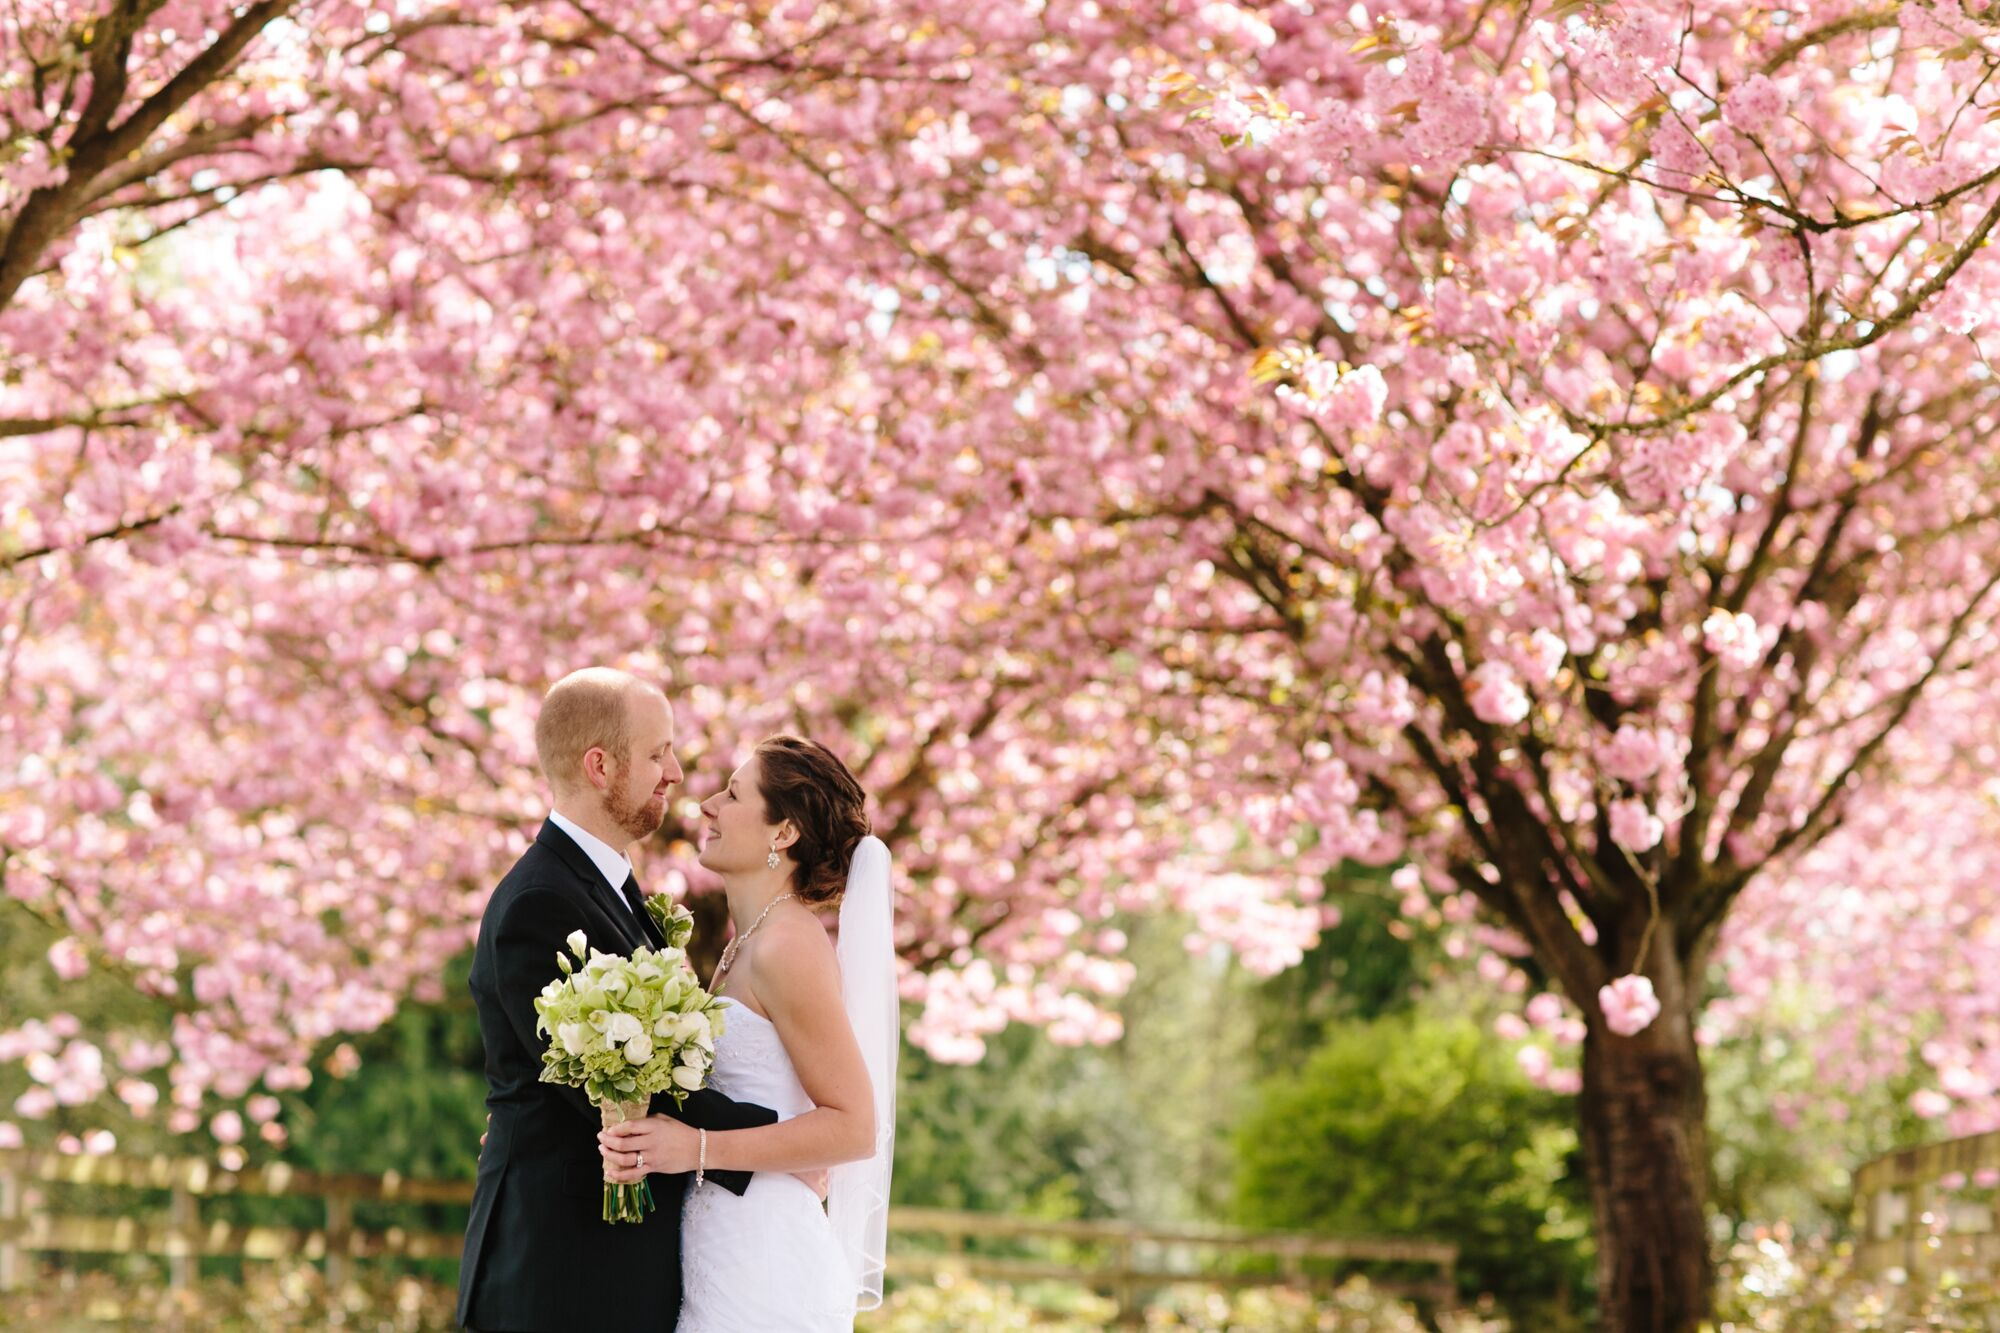 Spring Black and White Wedding Photos